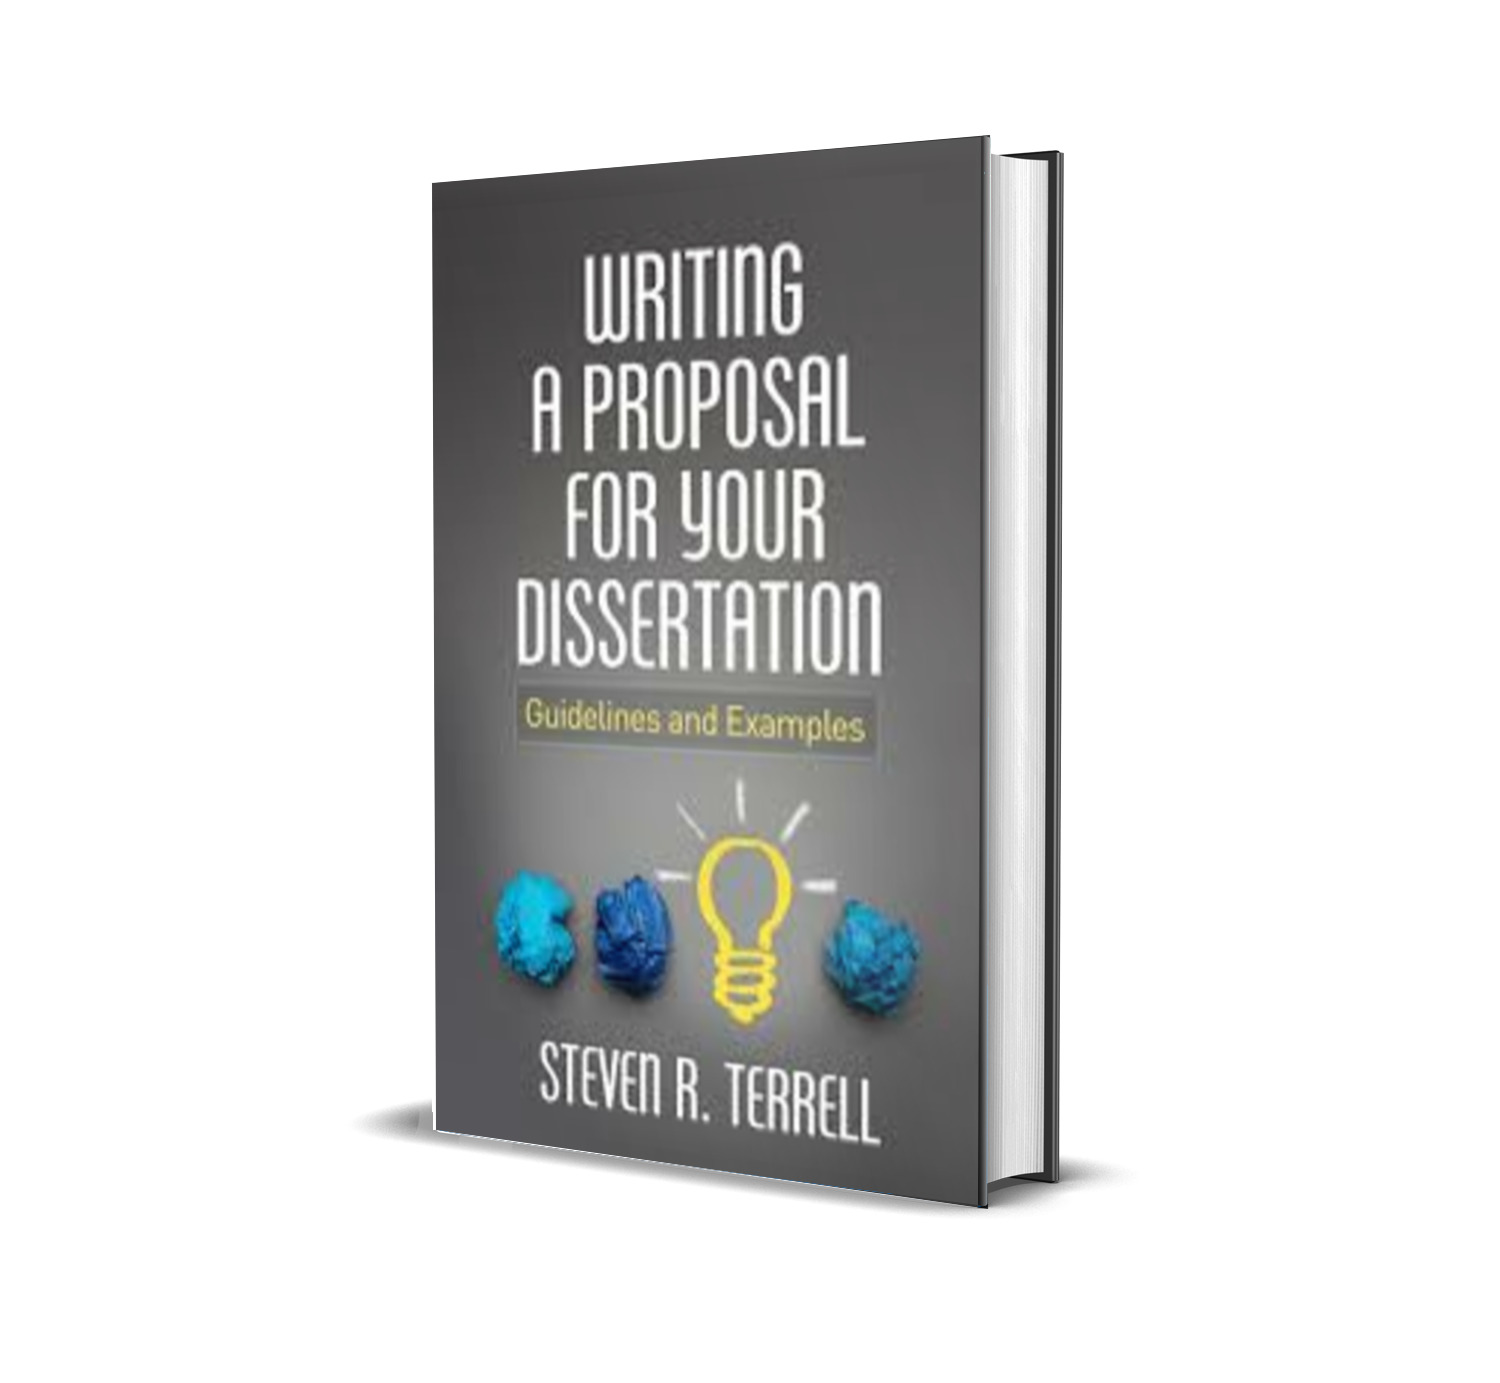 Writing a Proposal for Your Dissertation: Guidelines and Examples - Steven R. Terrell PhD